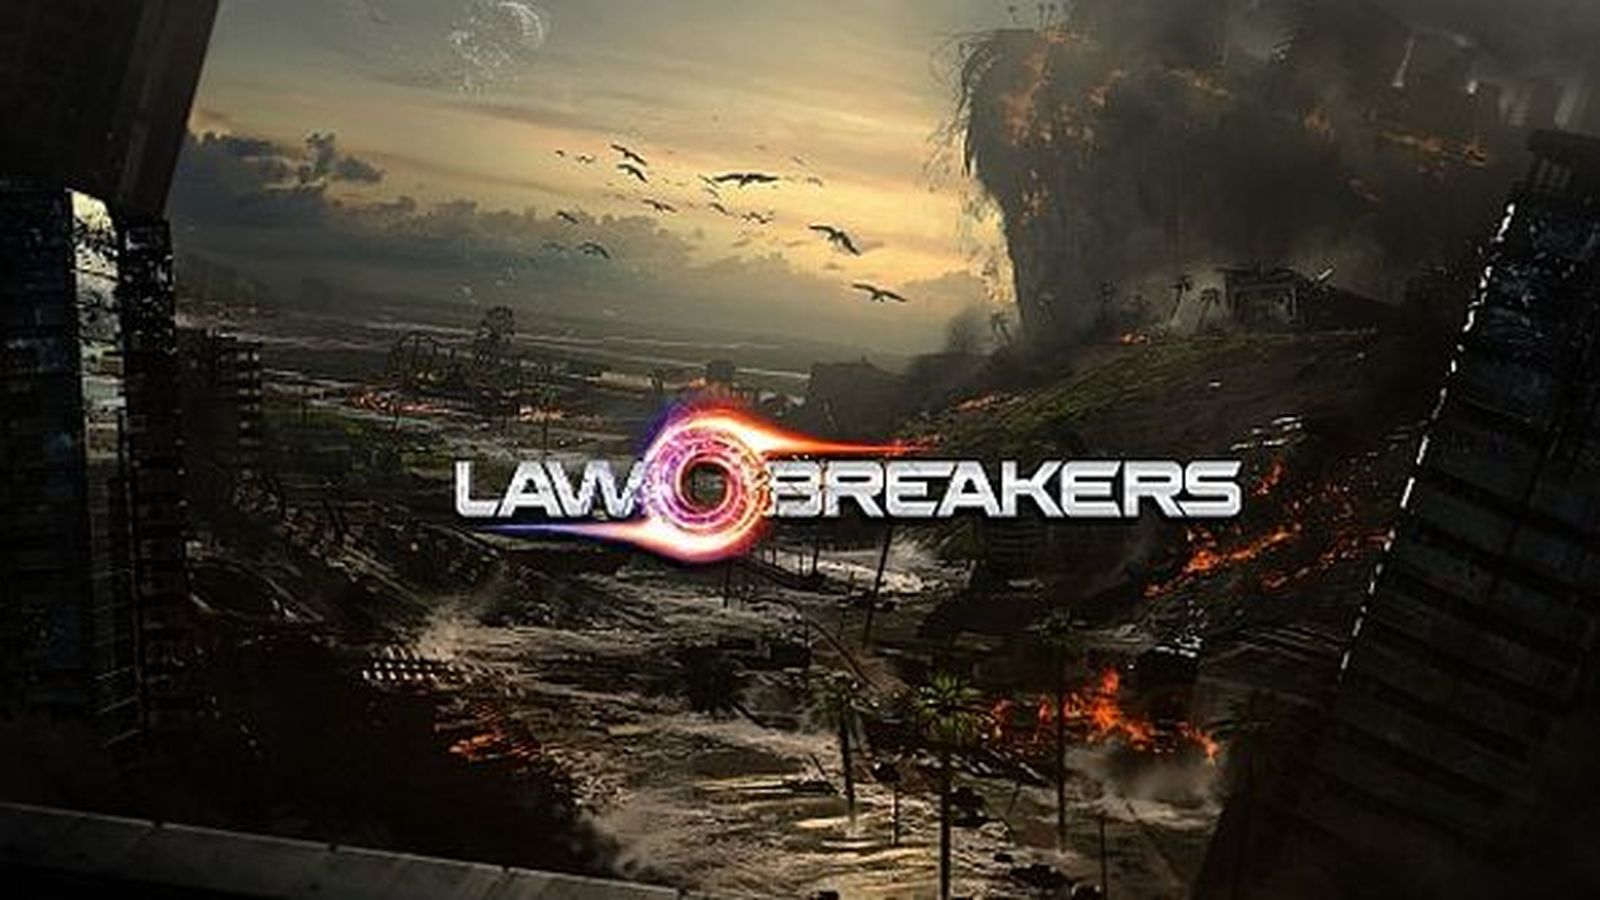 LawBreakers videos sing the virtues of verticality